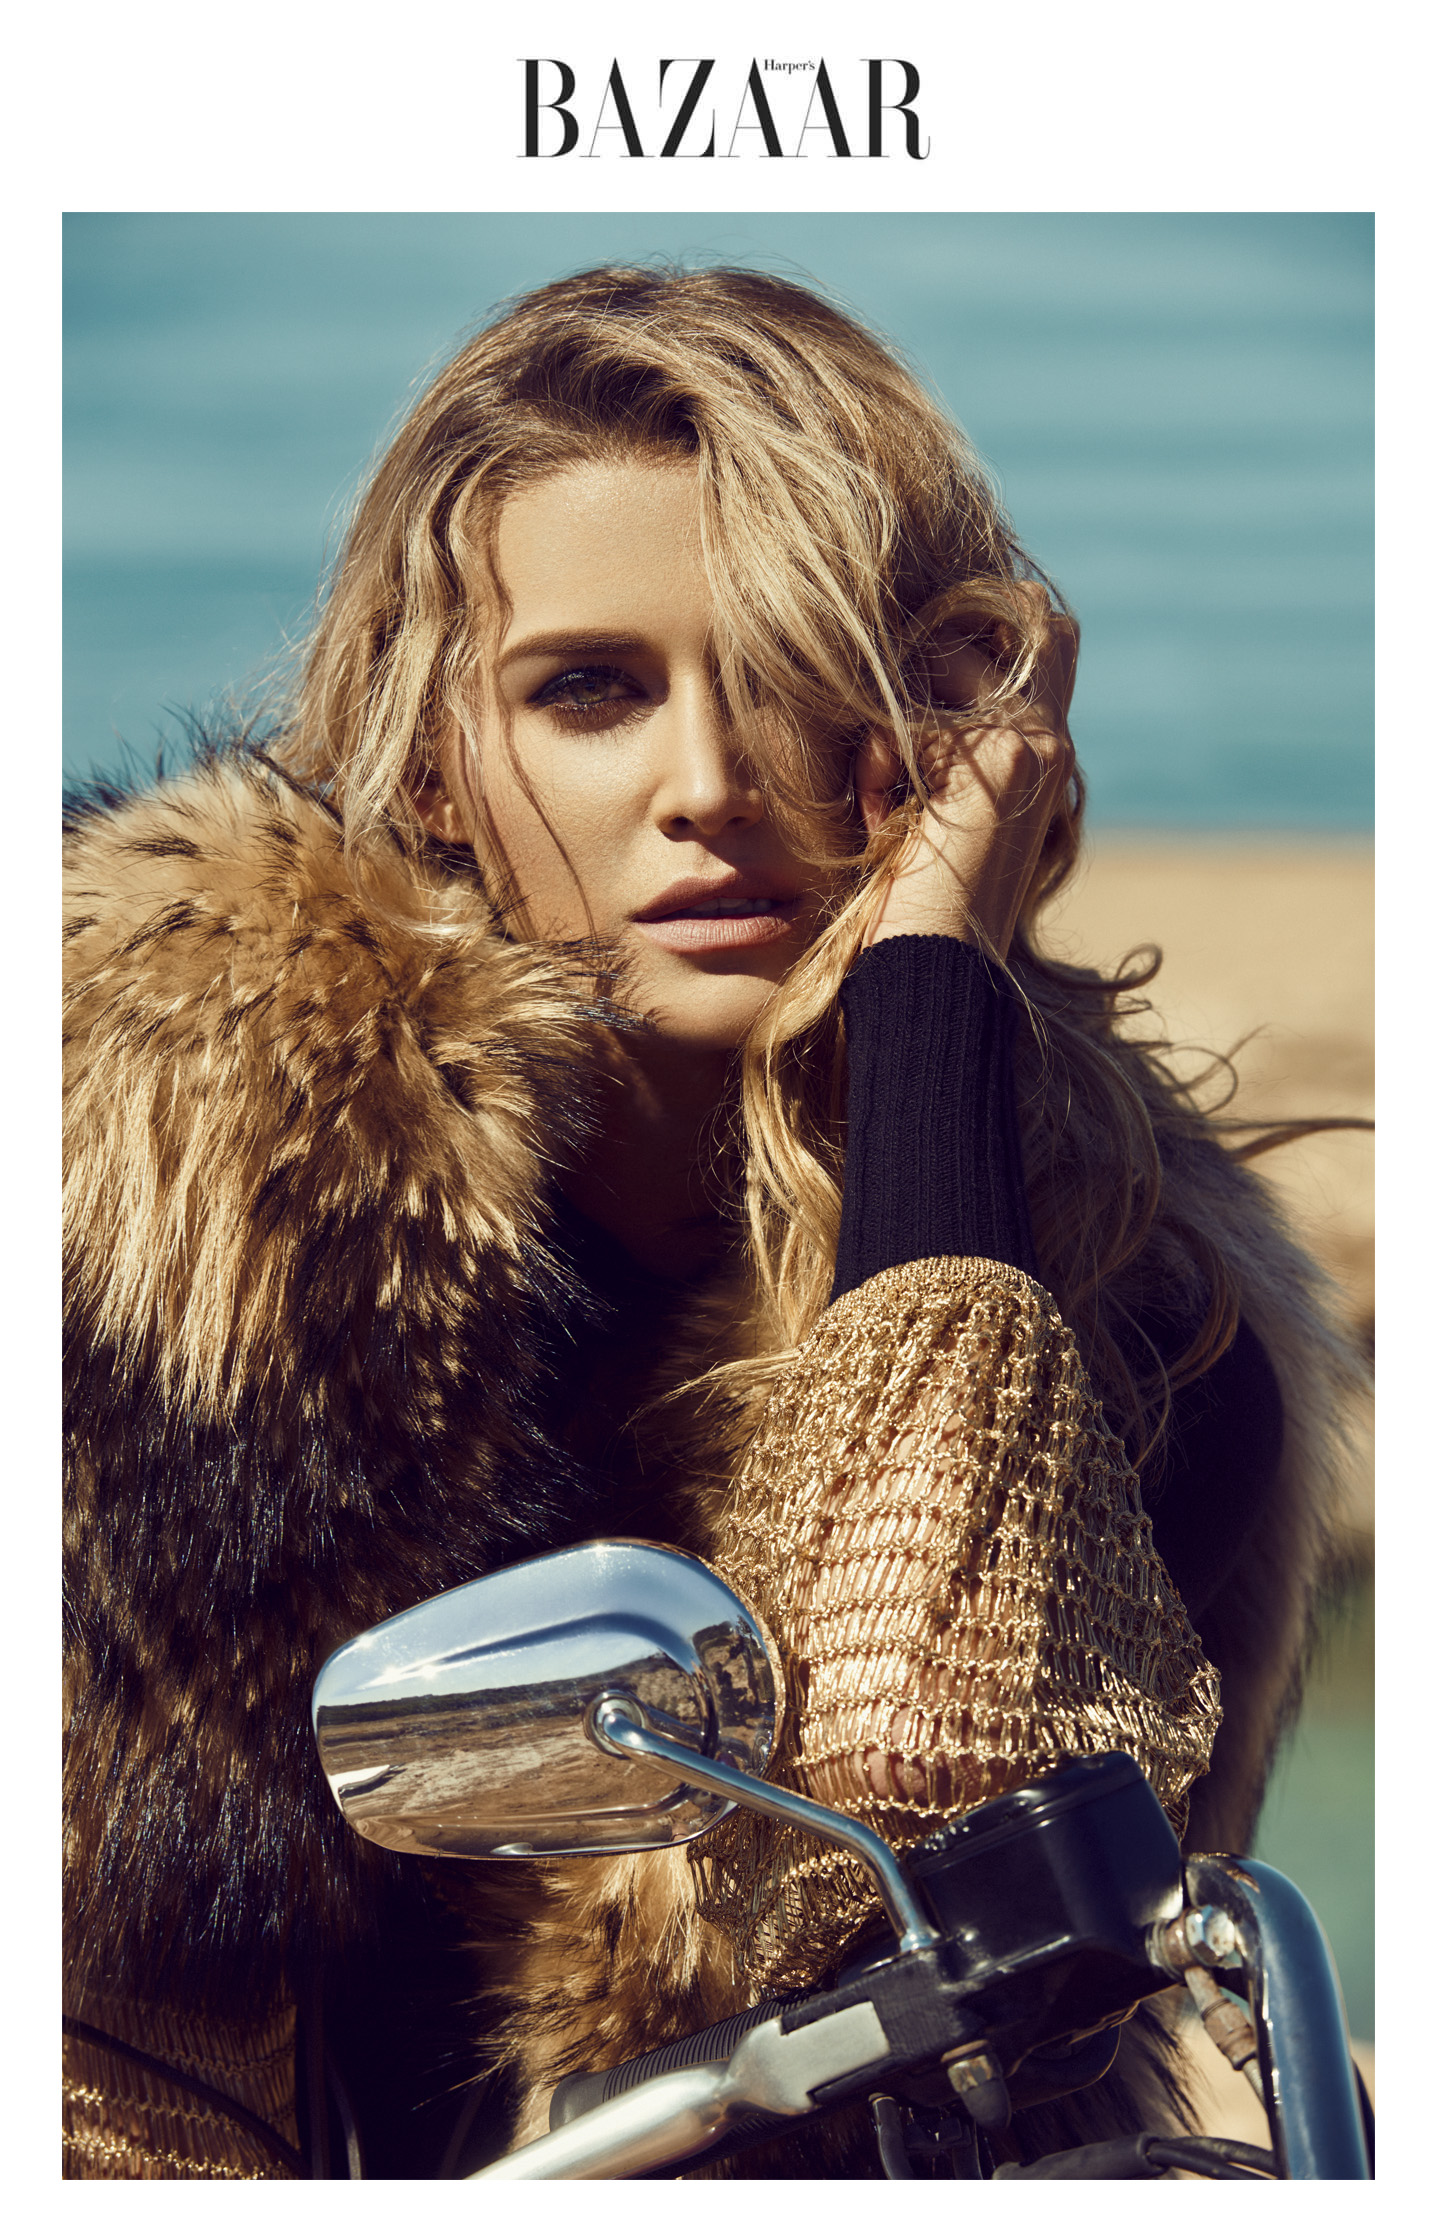 Cheyenne Tozzi by Stefan Imielski for Harper's Bazaar photography